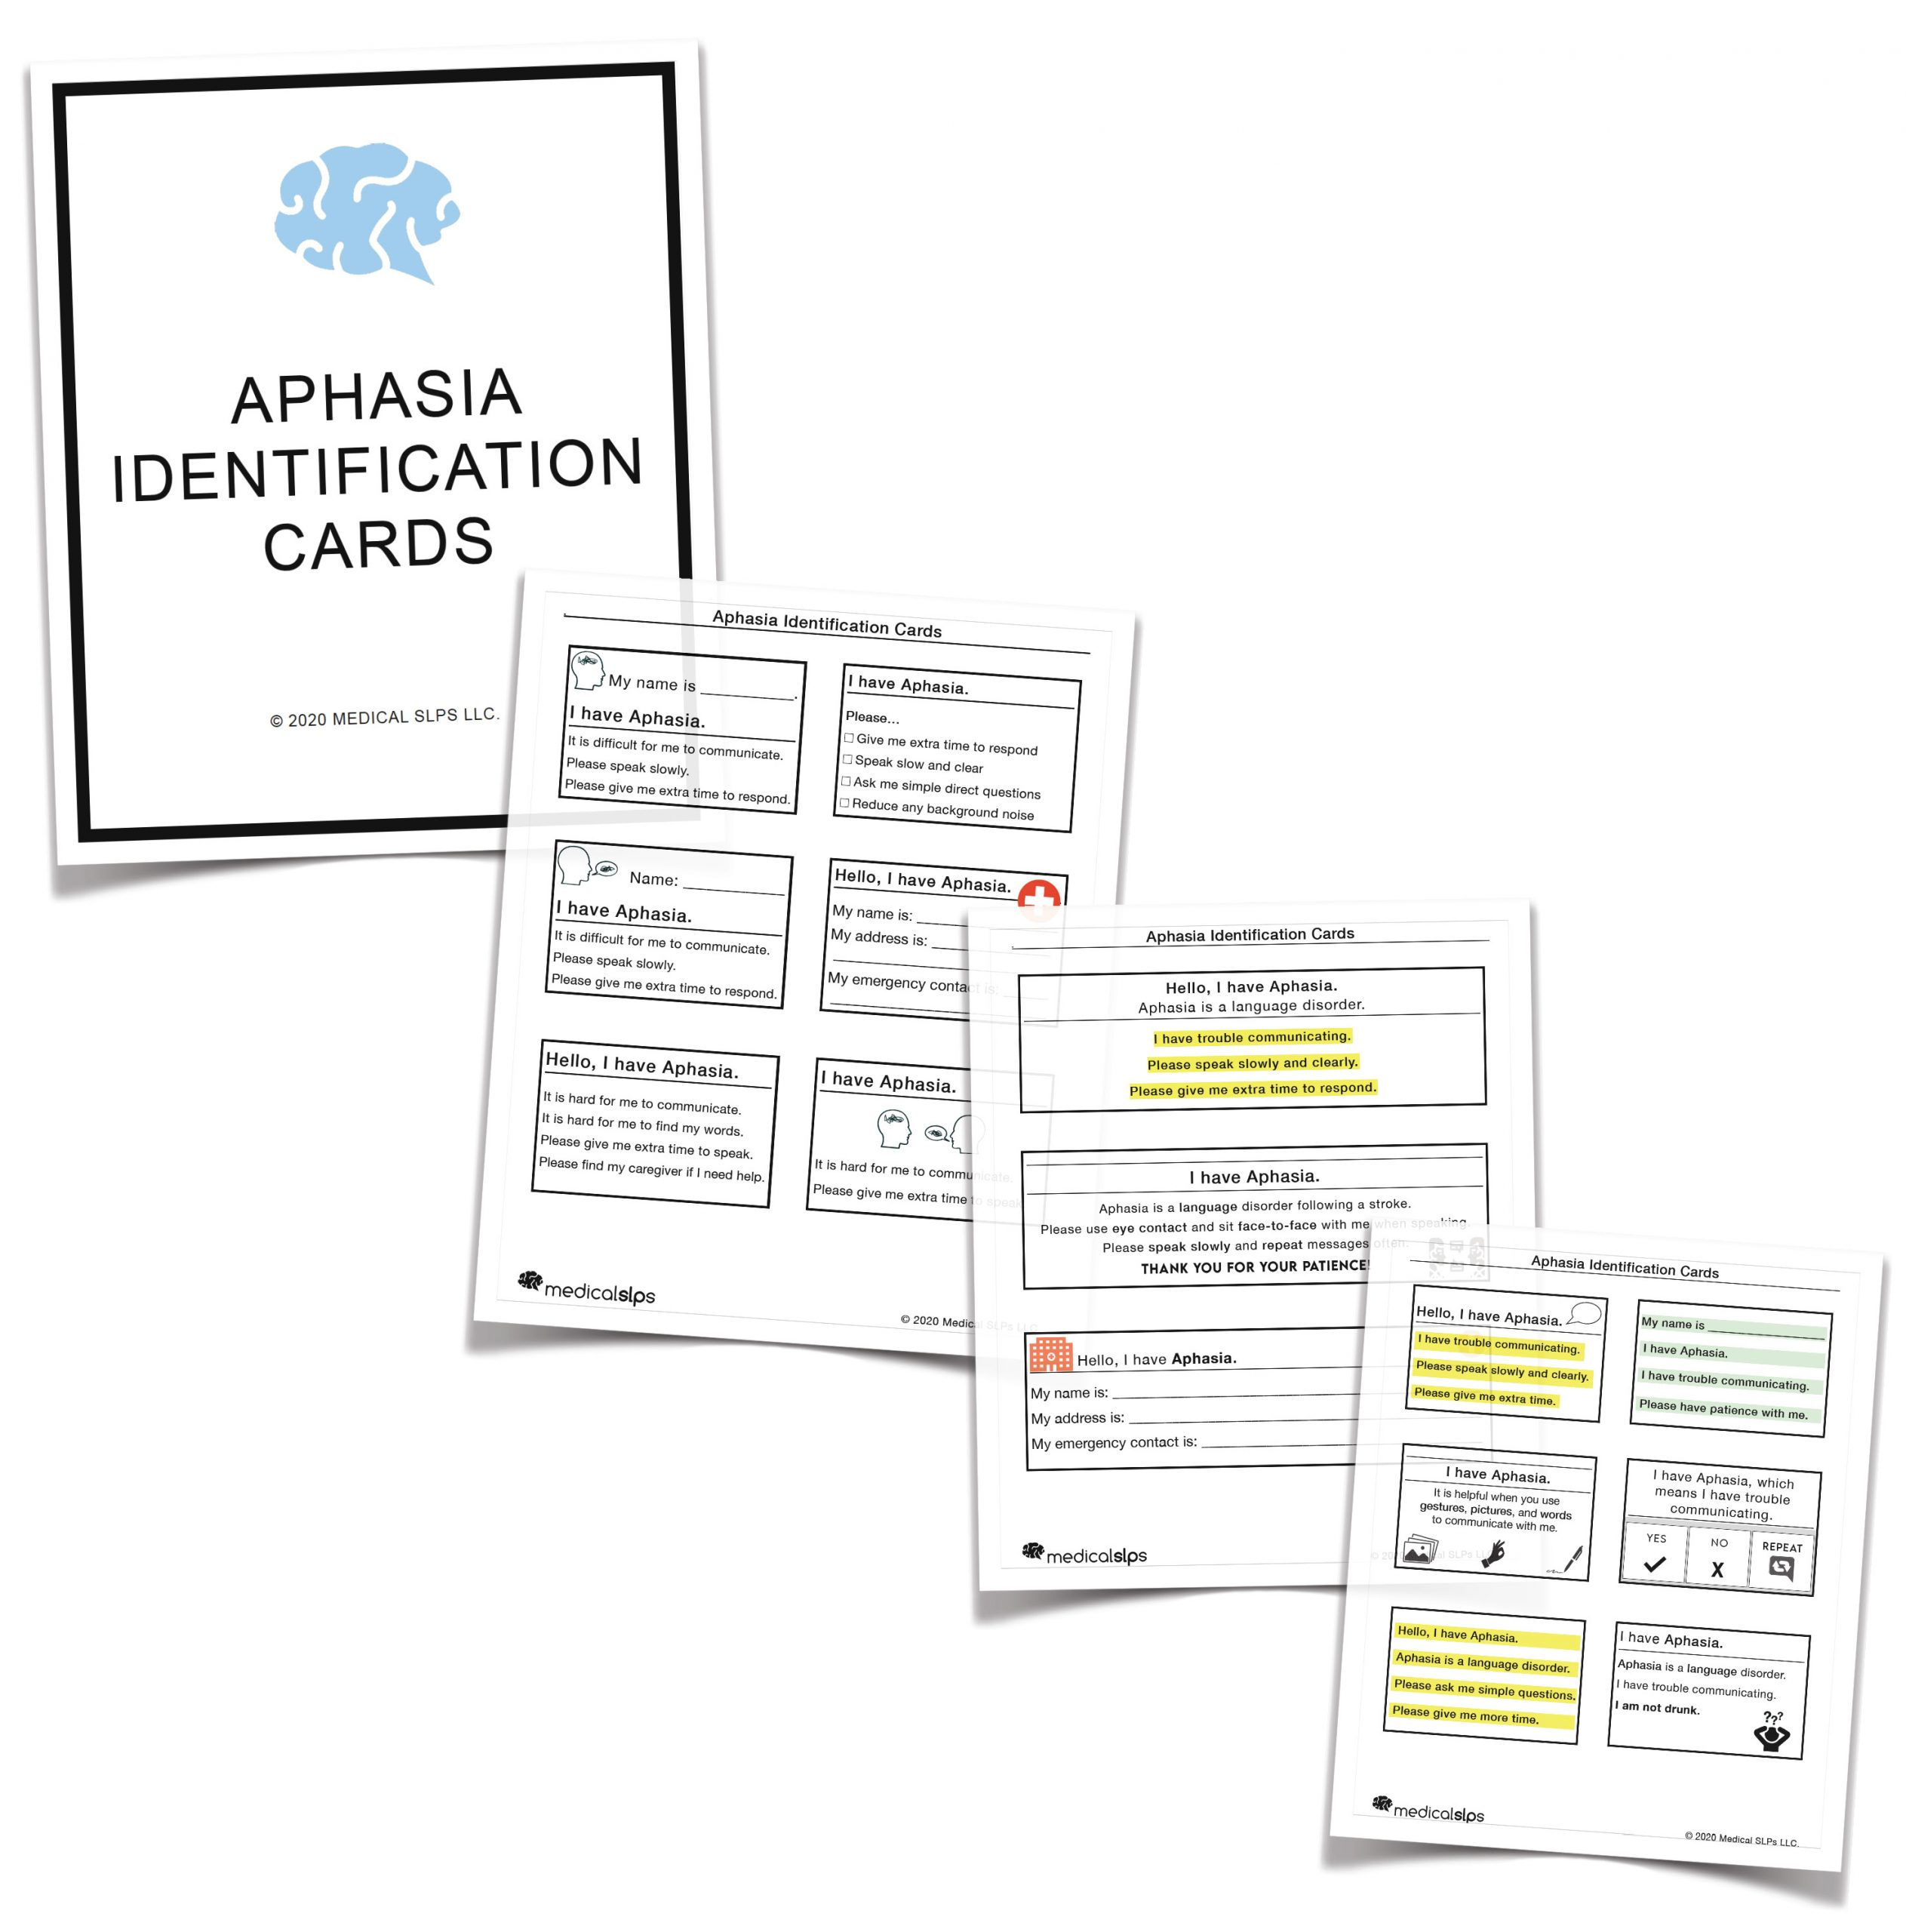 Aphasia Identification Cards